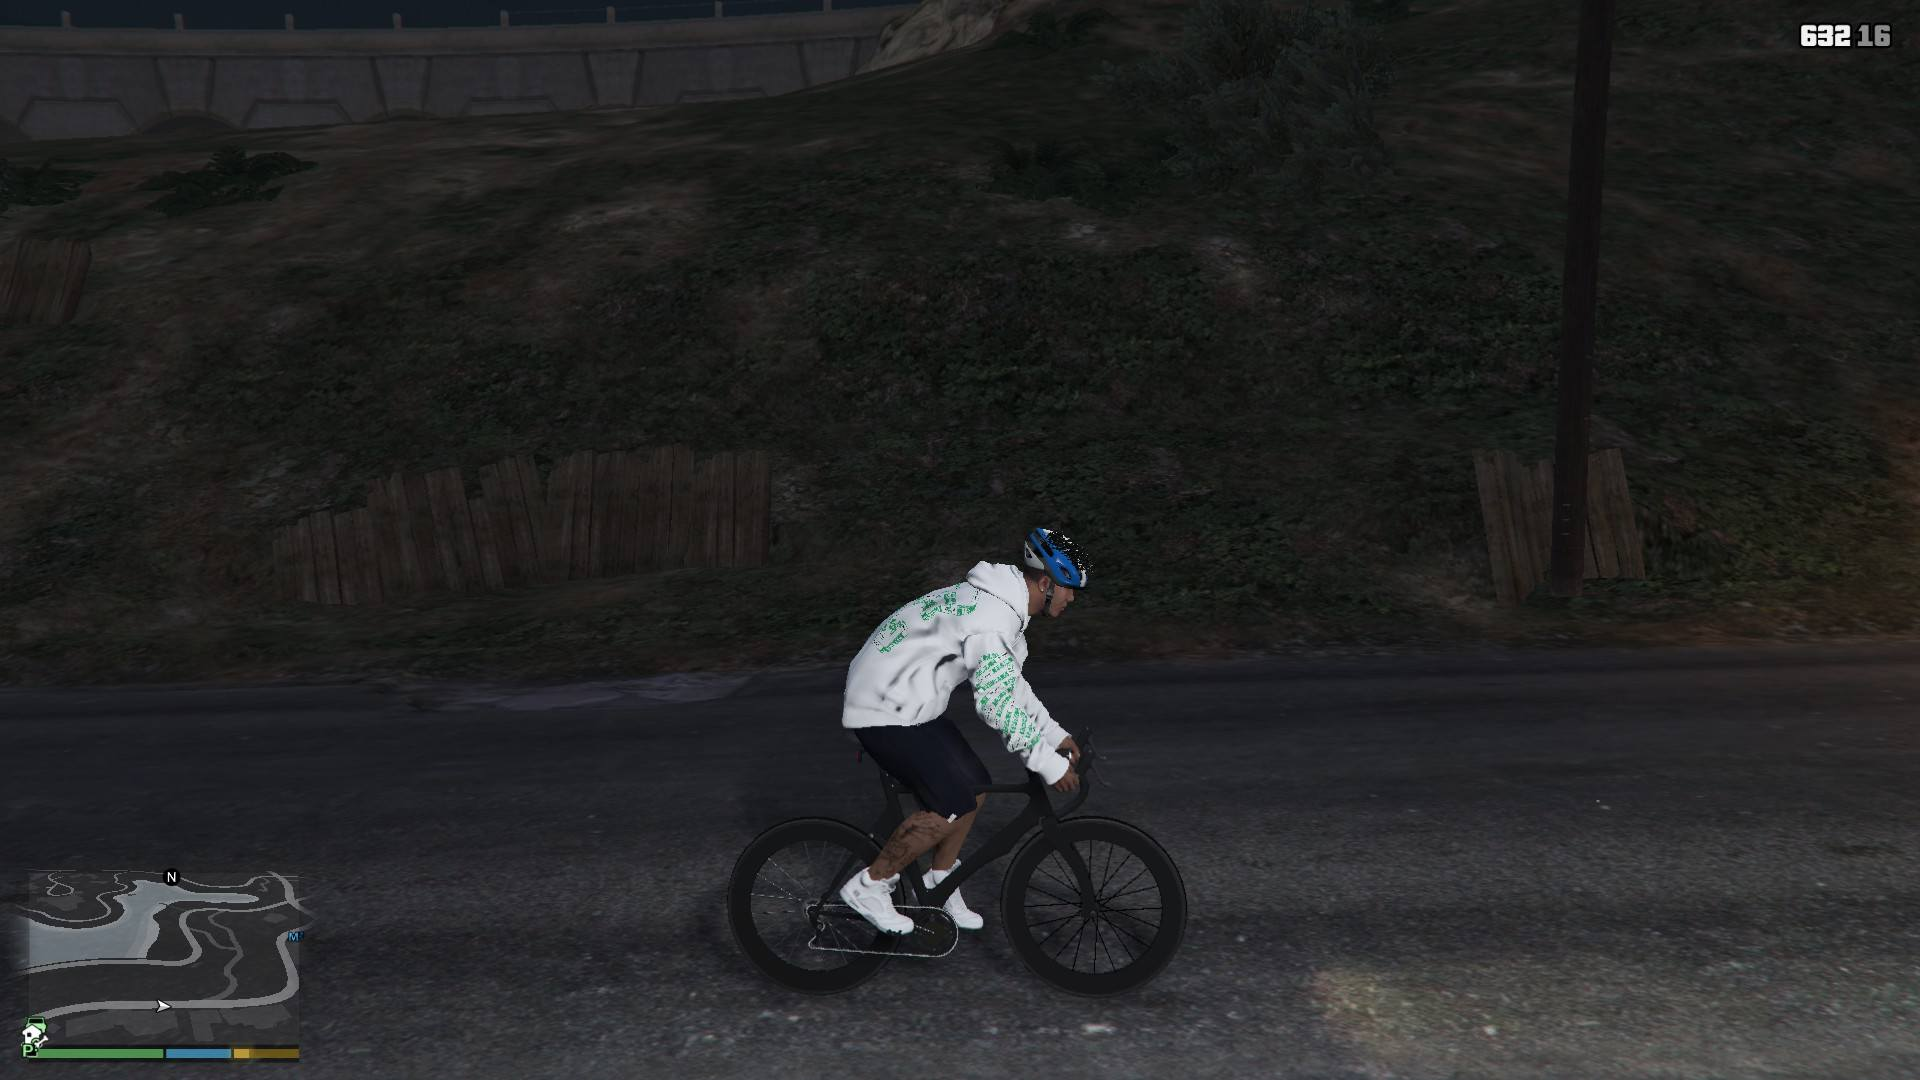 CIVRHINO Bikecycles GTA5 Mods (2)